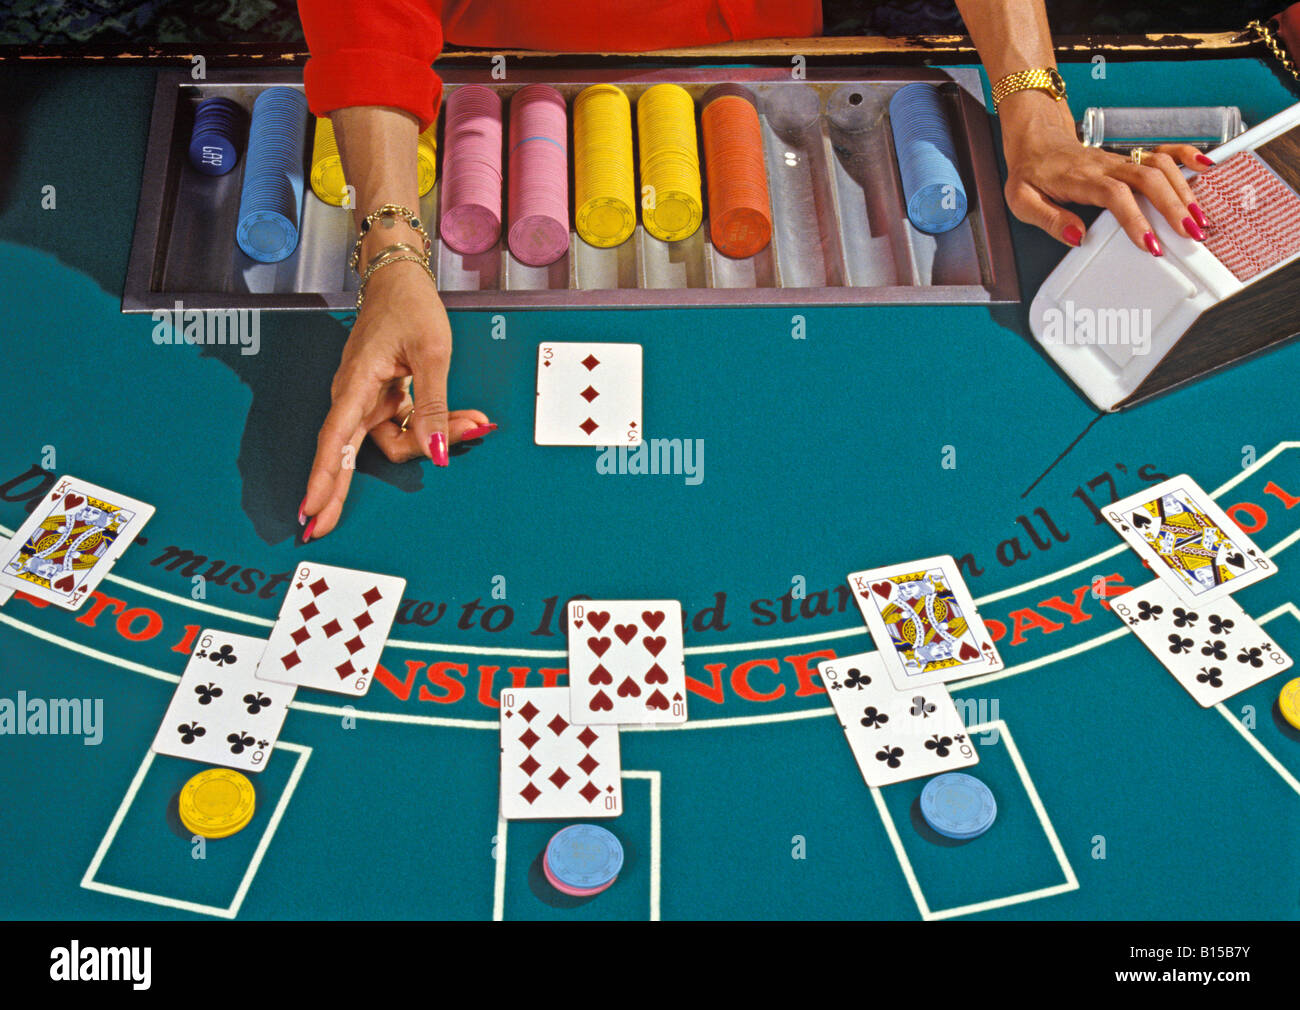 A blackjack (21) table in a casino. - Stock Image